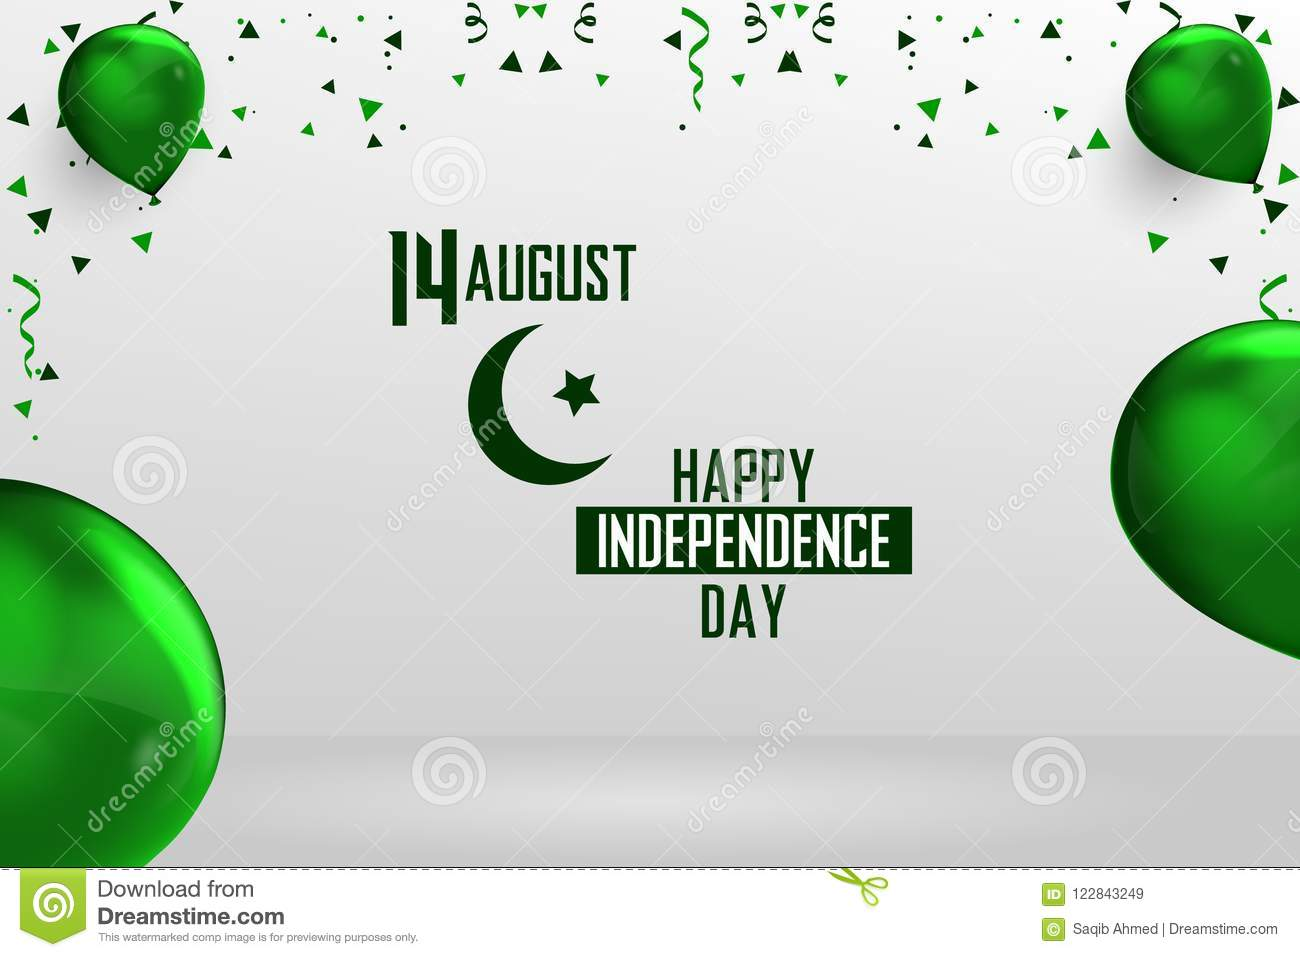 Happy Independence Day Pakistan 14 August Pakistani Independence